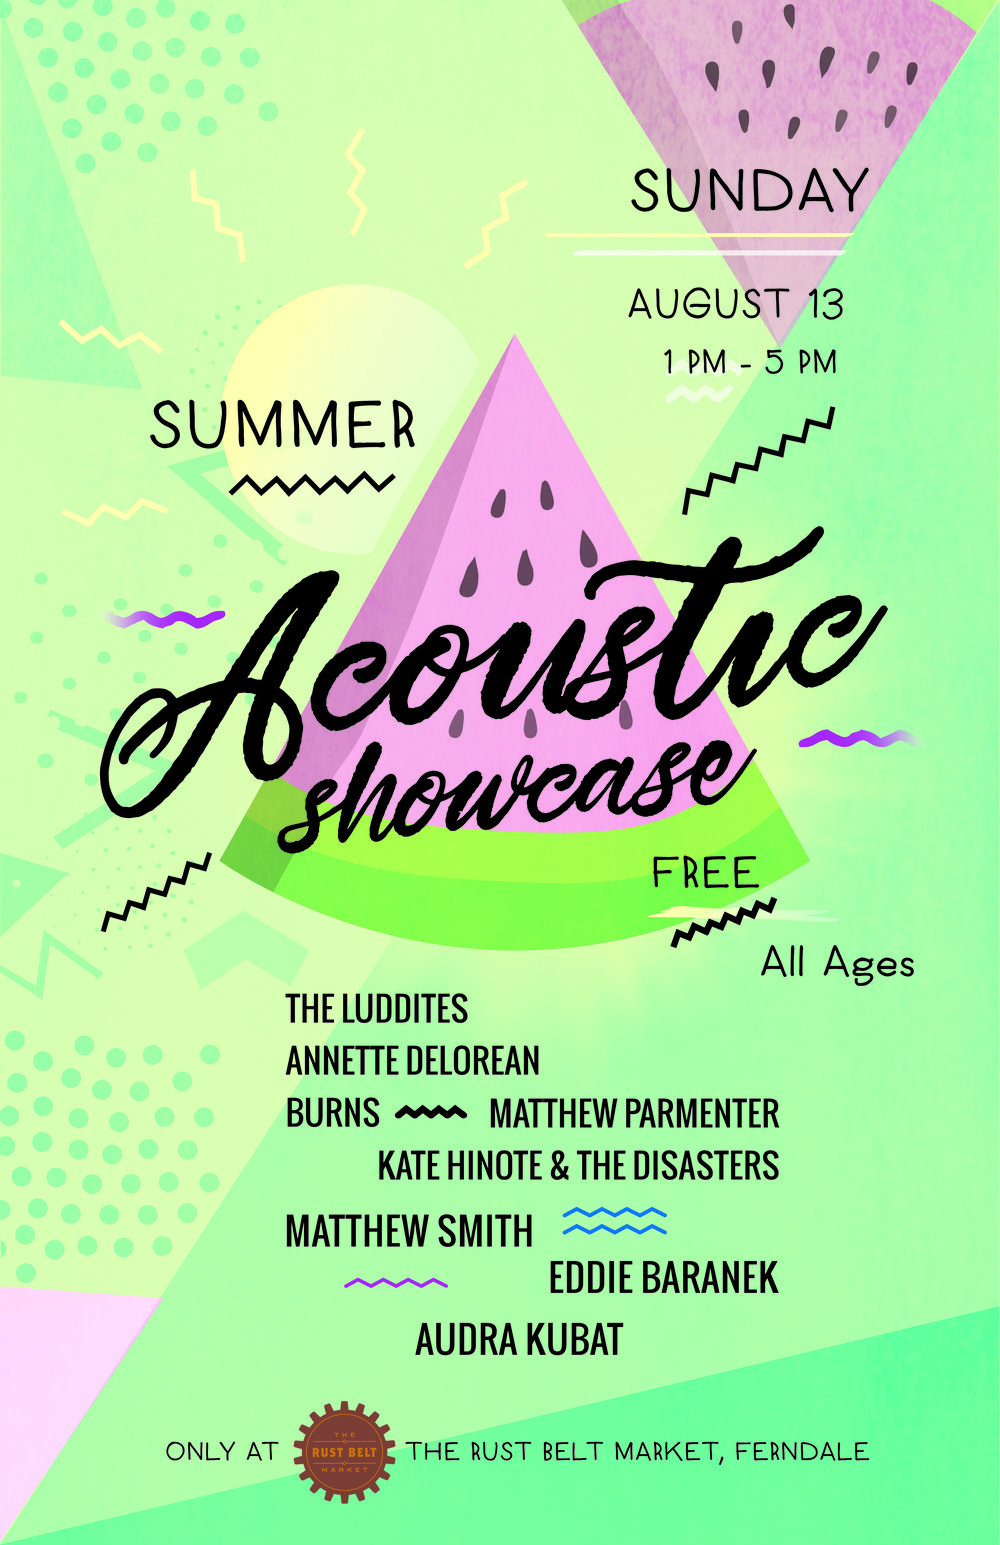 summeracousticshowcase